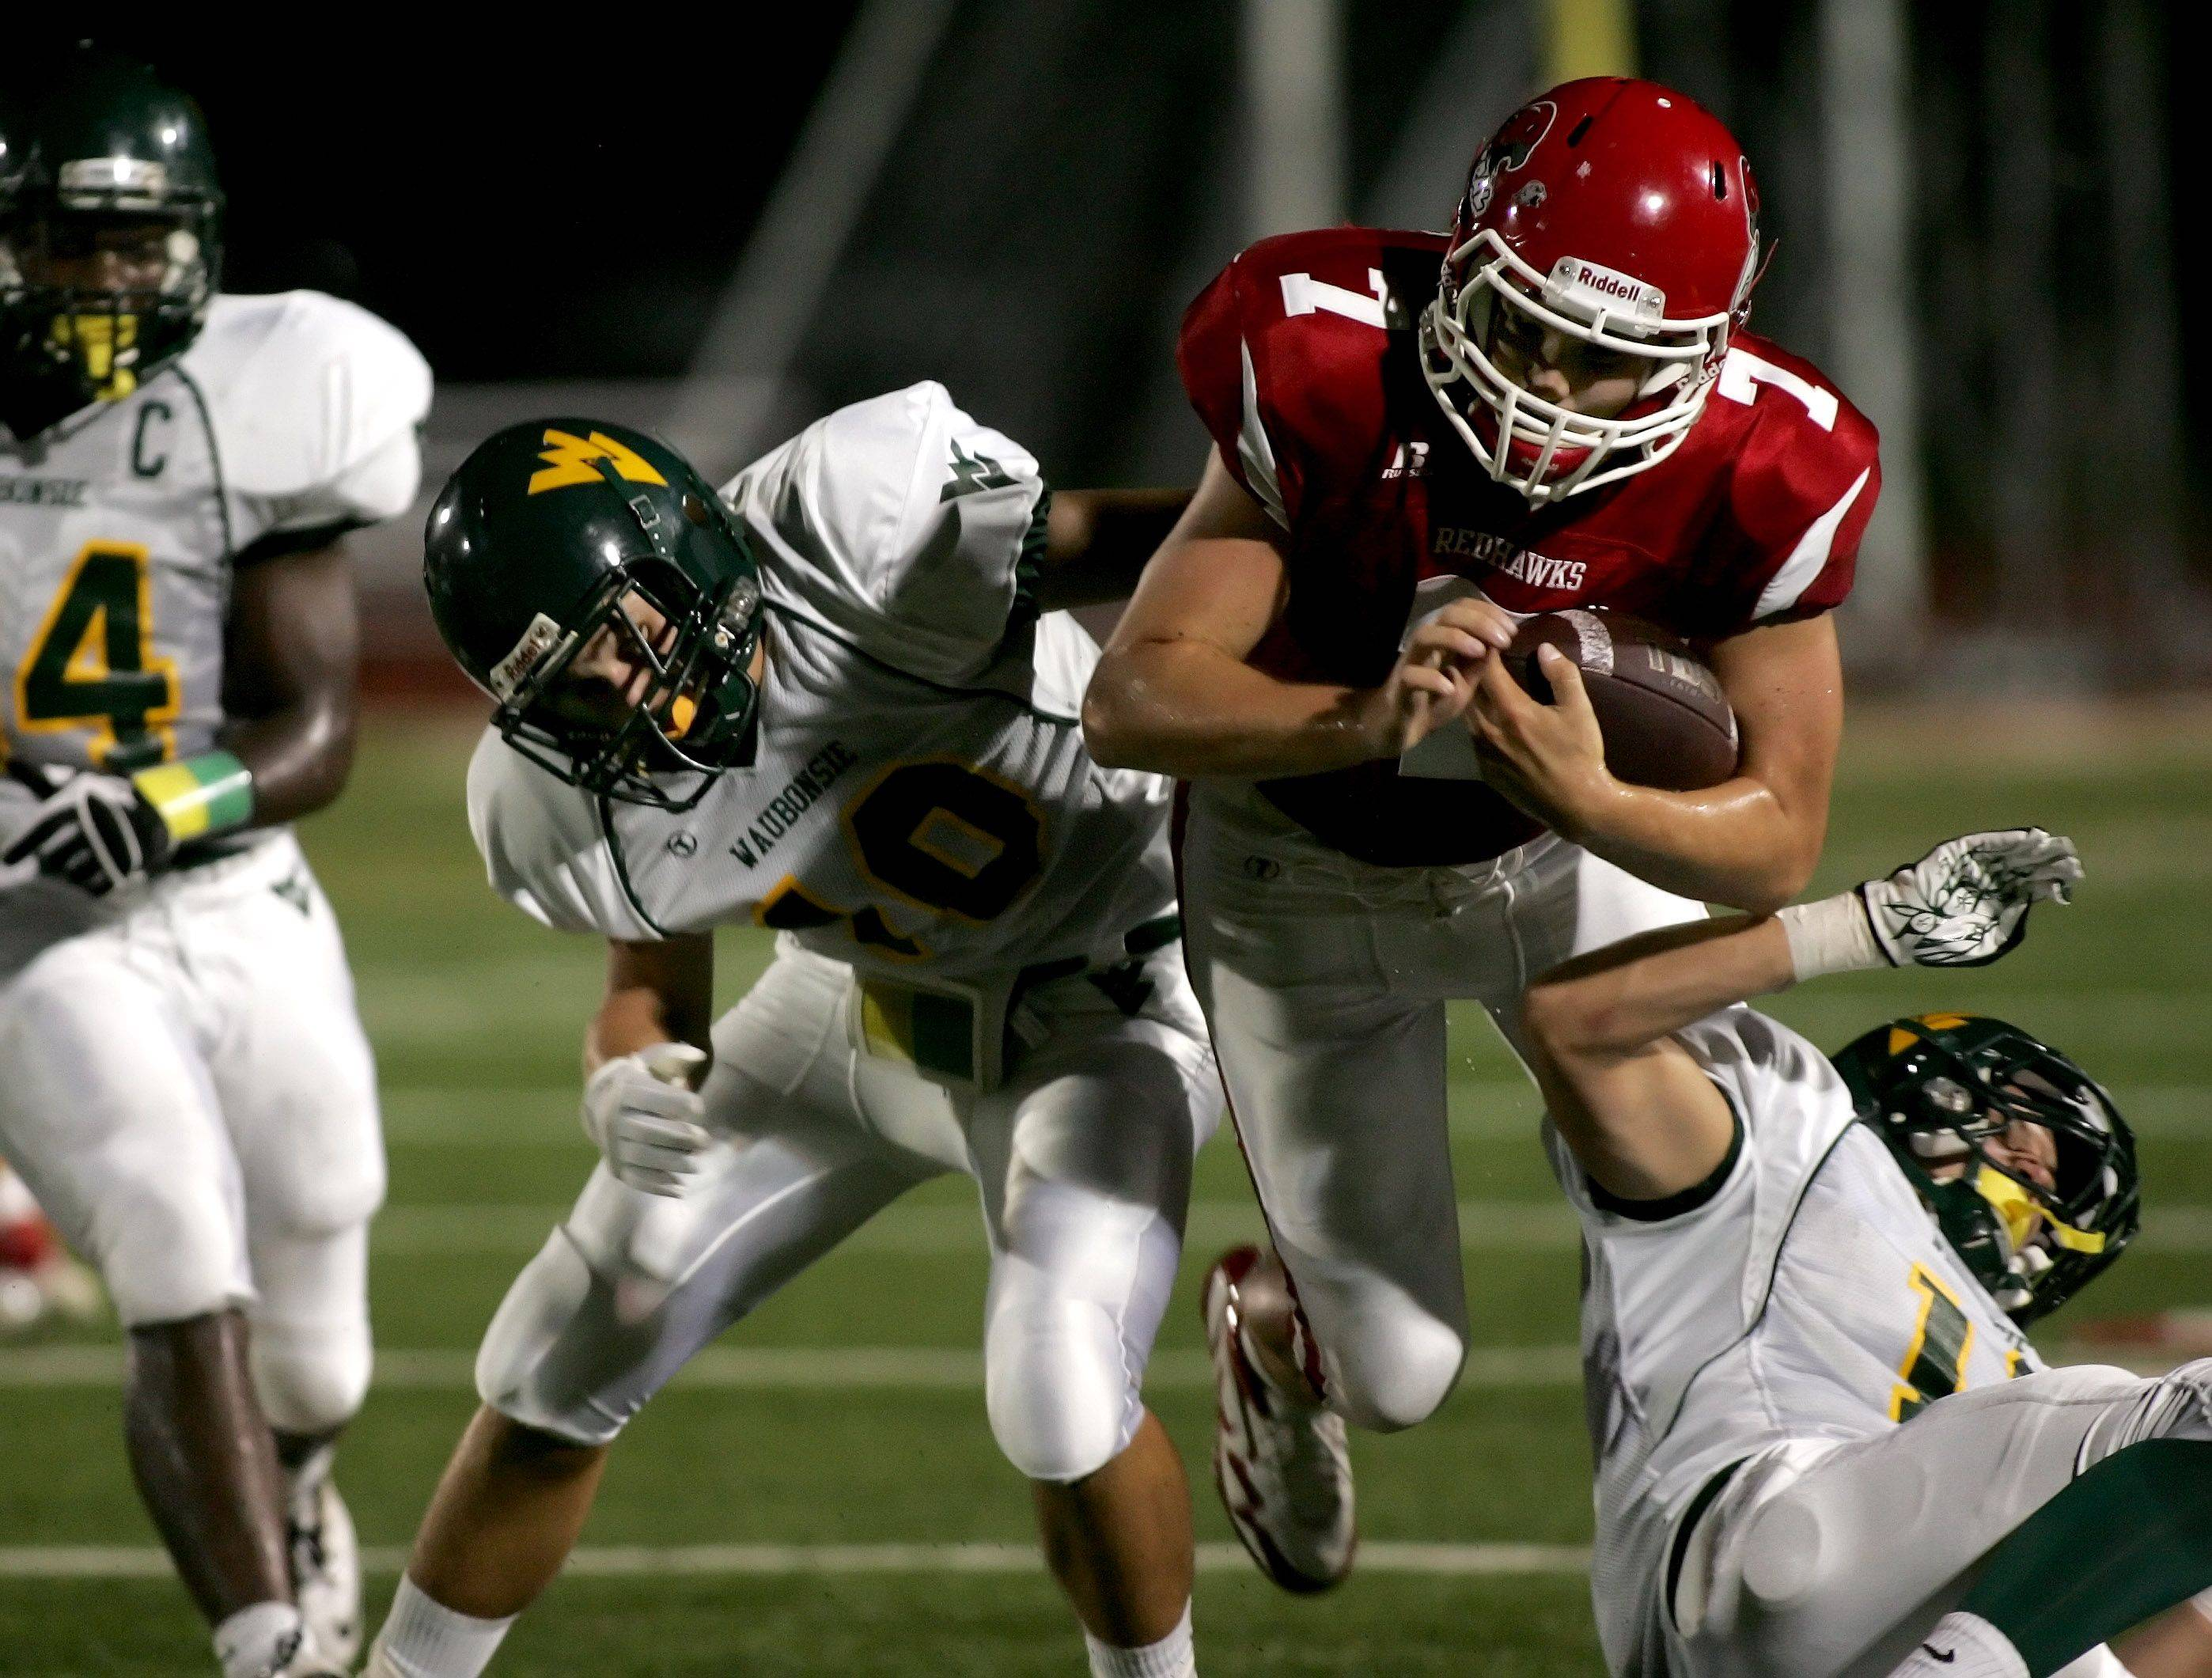 Connor Mersch, left, and Jim Delaney of Waubonsie Valley tackle quarterback Ian Lewandowski of Naperville Central in football action Friday in Naperville.